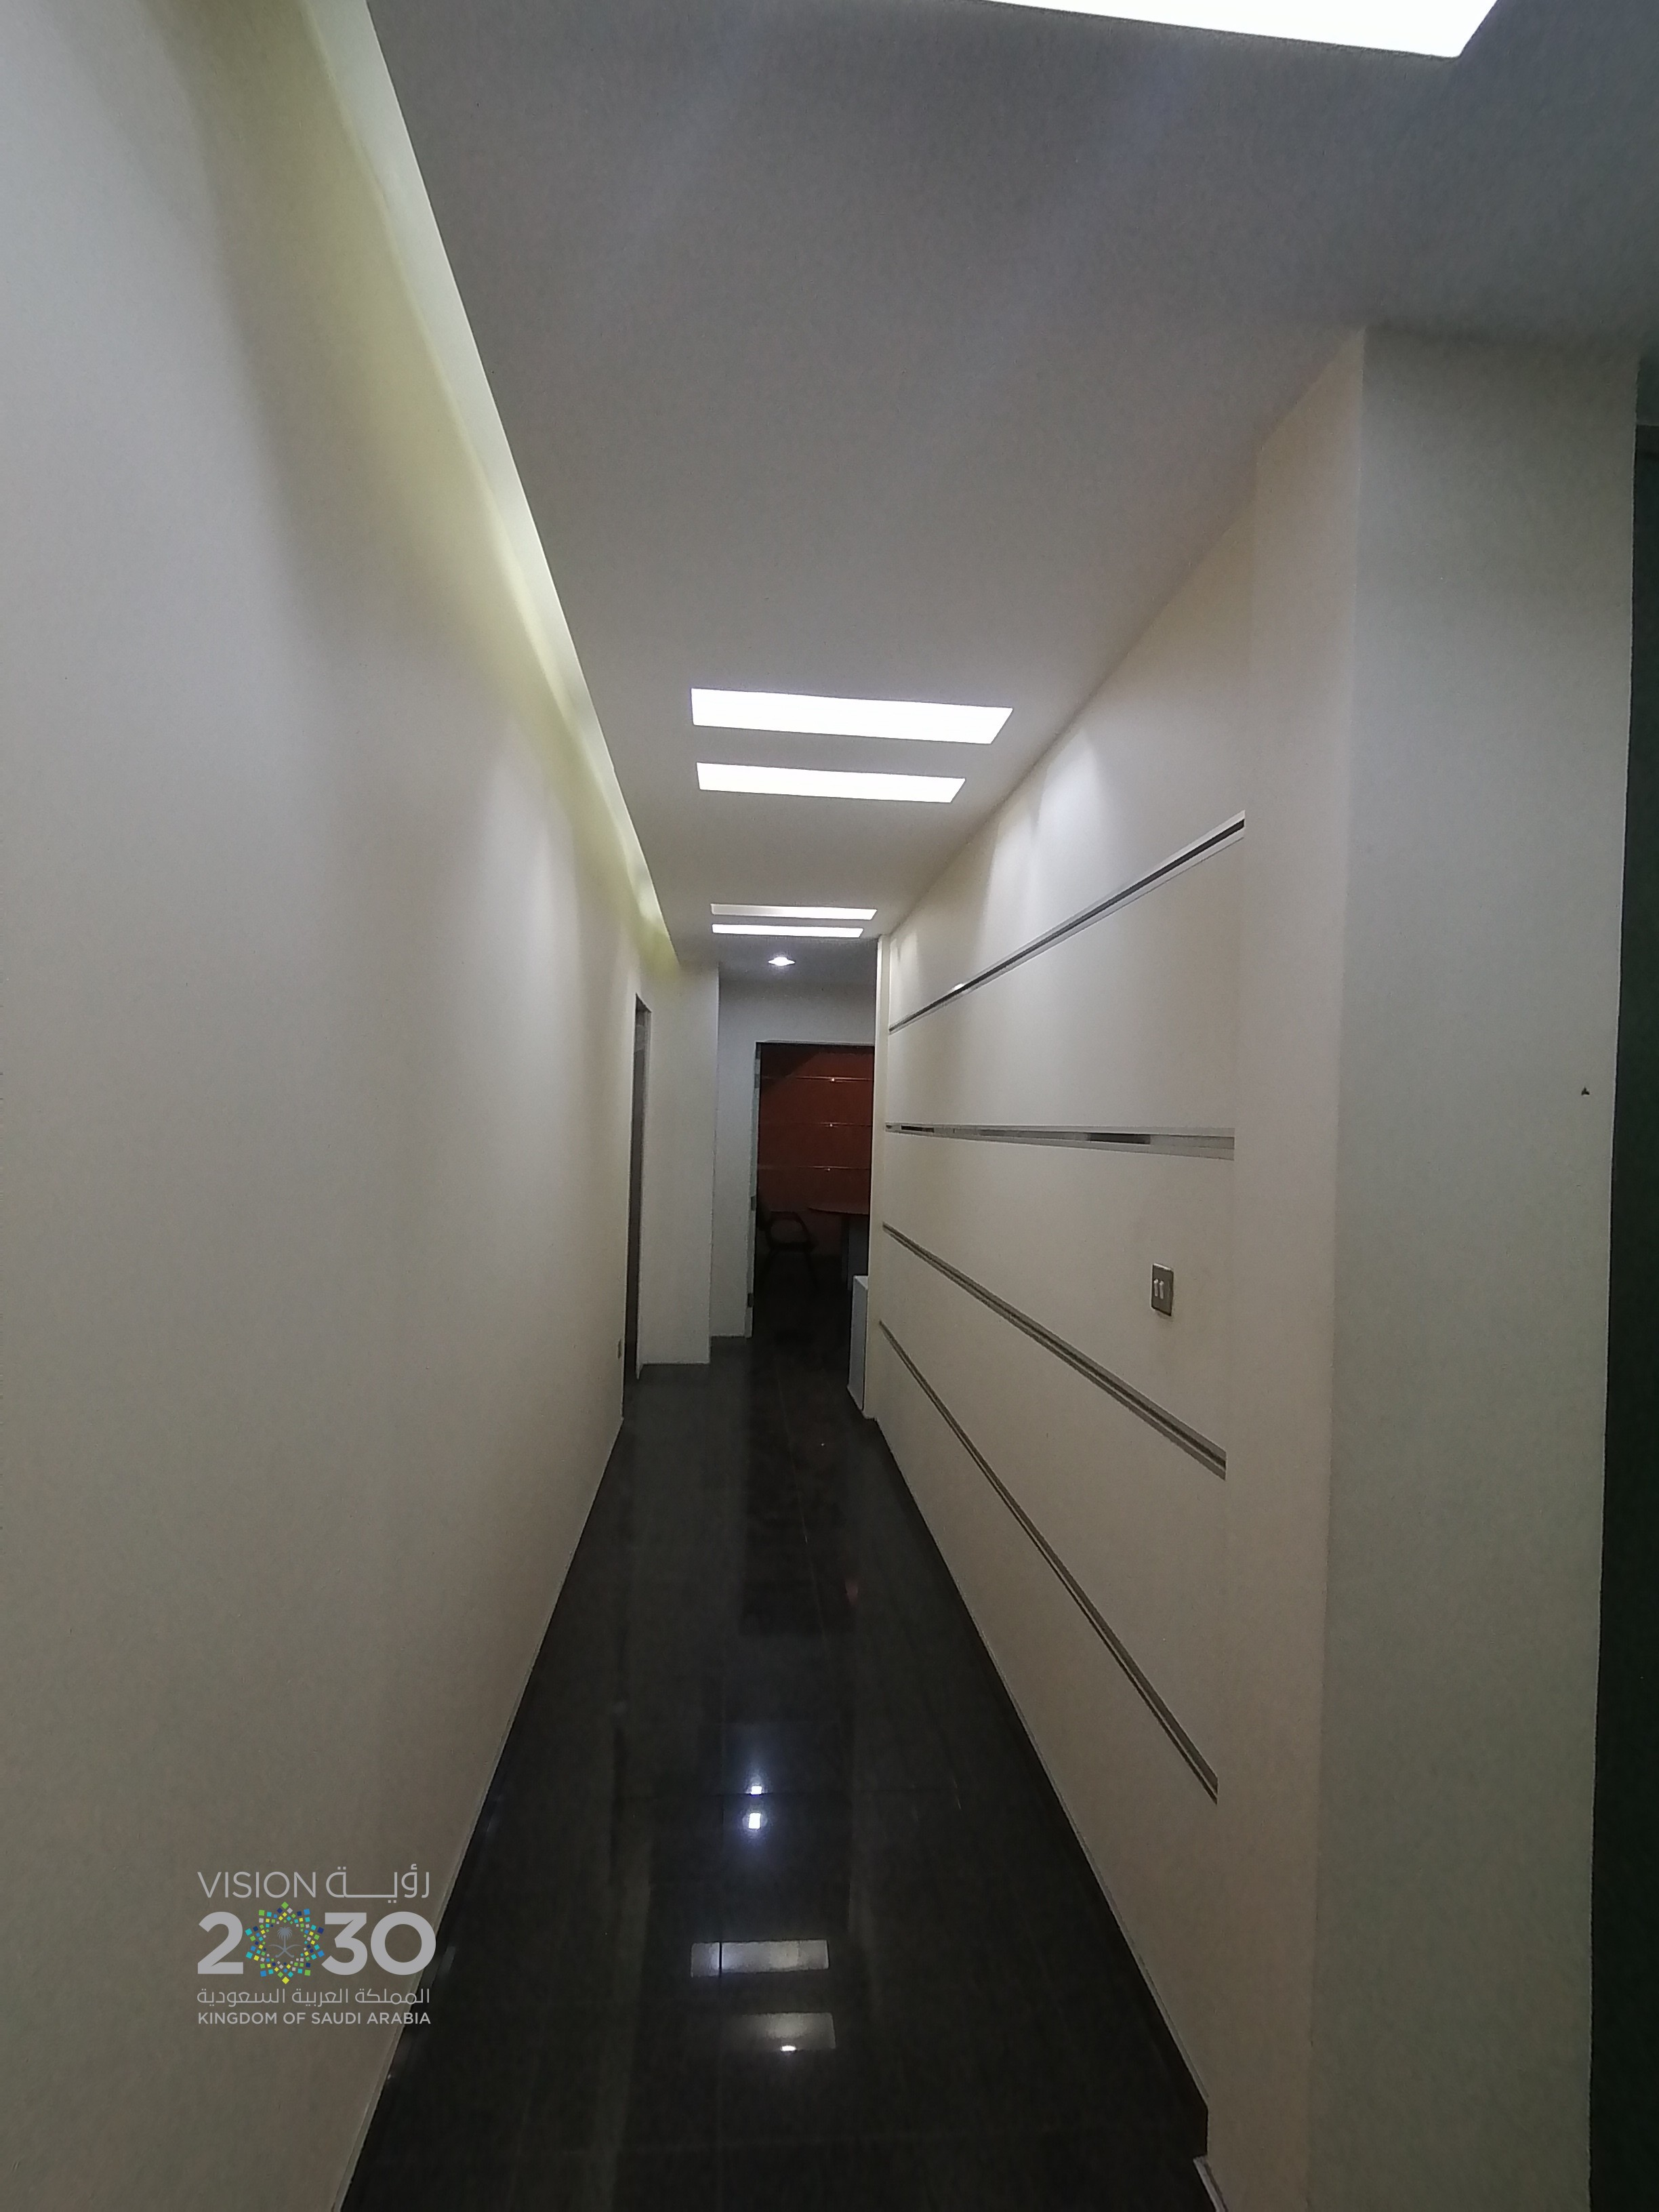 Office  Apt Tahliy  St Jeddah